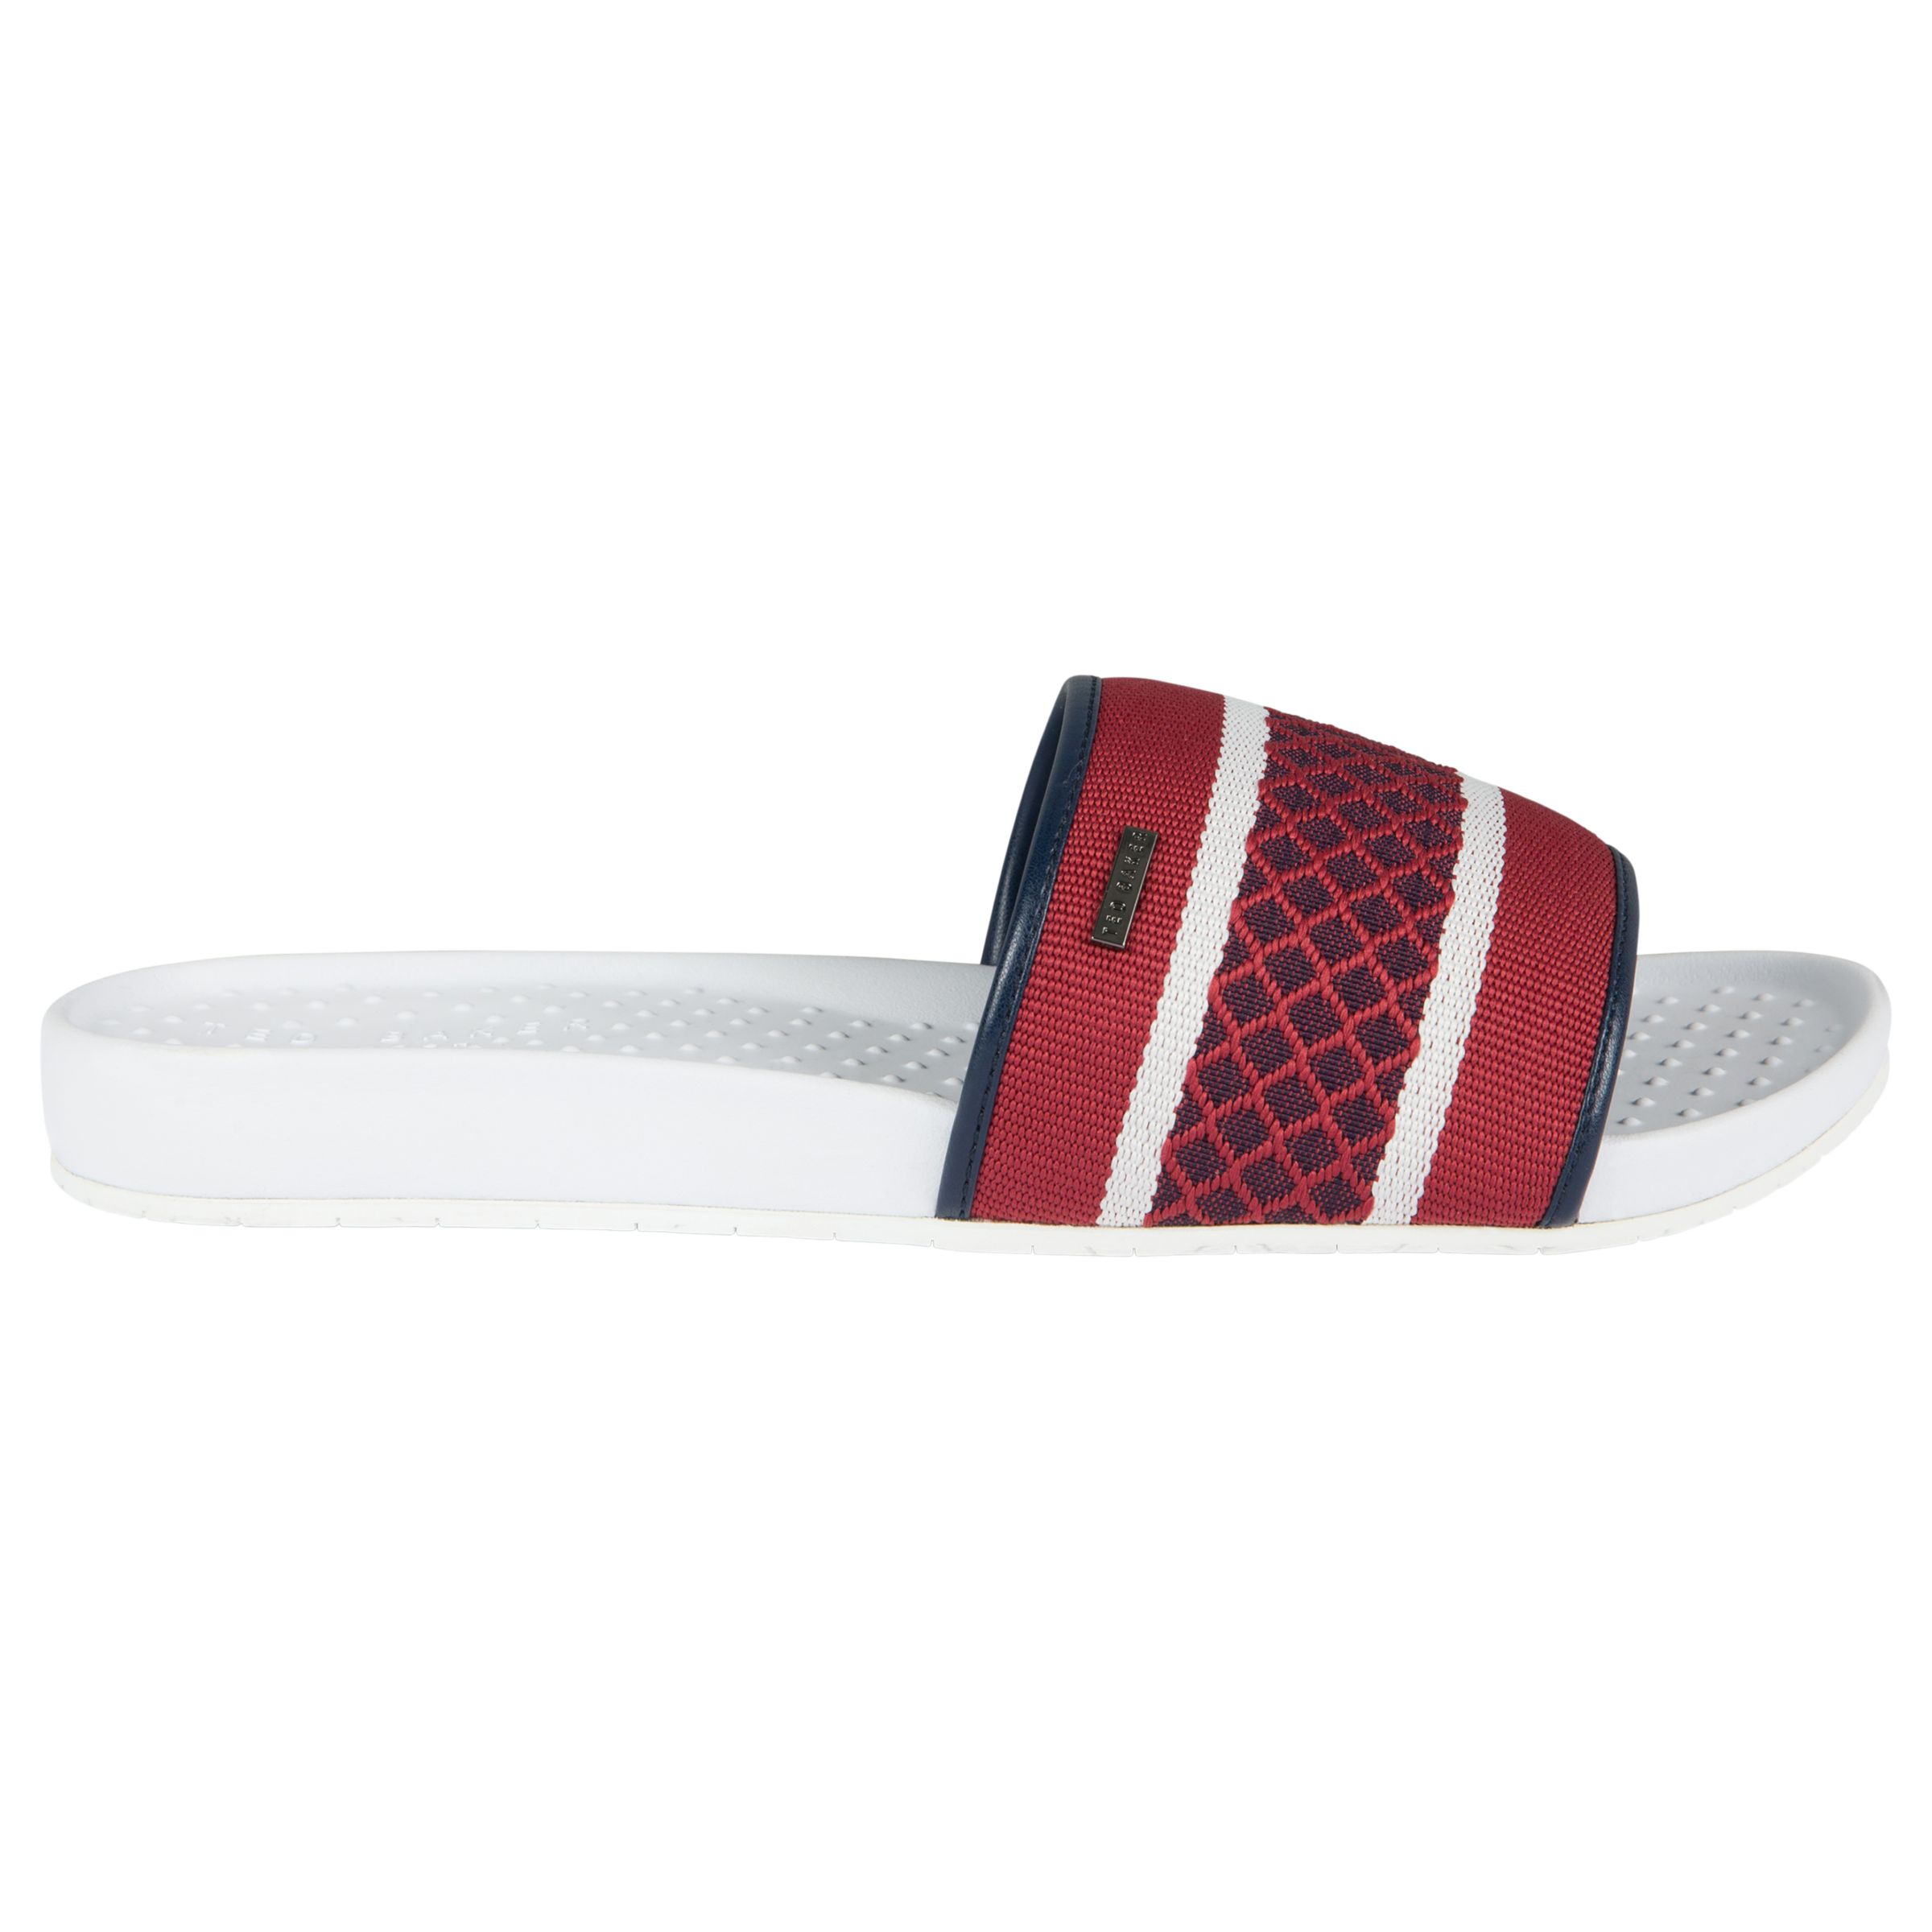 ad3ba5d36 Ted Baker Maluse Sliders